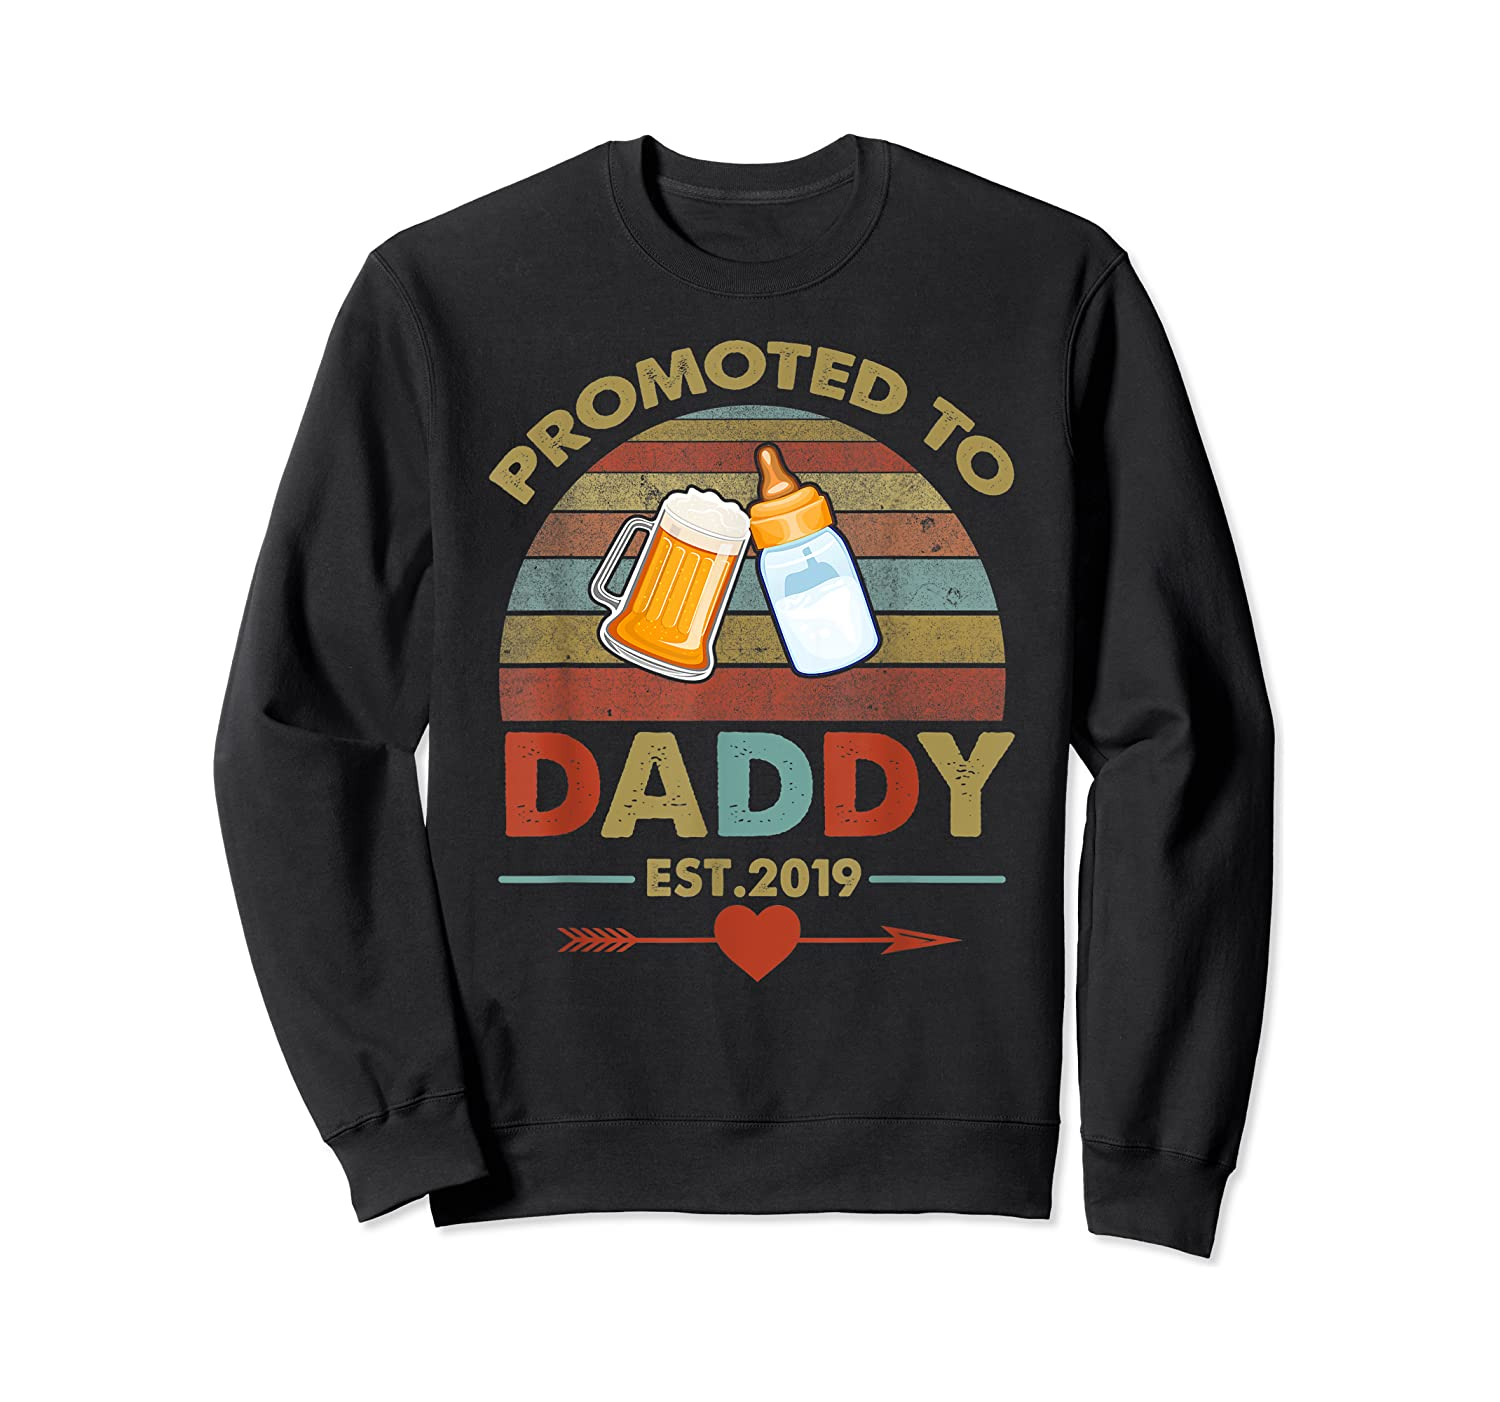 Promoted To Daddy Est 2019 Vintage Arrow T-shirt Crewneck Sweater